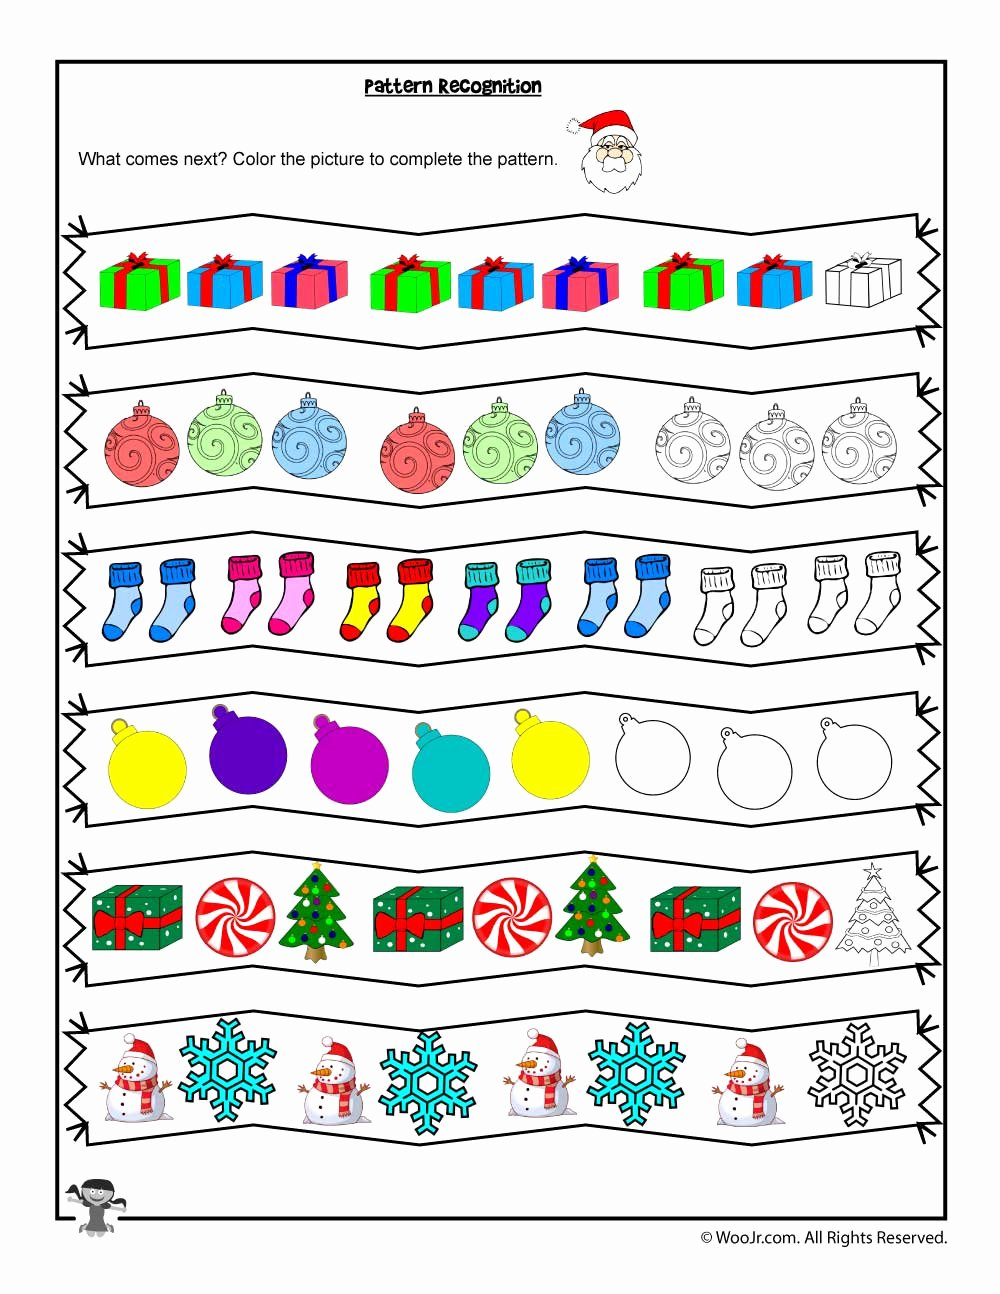 Christmas Pattern Worksheets for Preschoolers Printable Pattern Recognition Christmas Coloring Worksheet